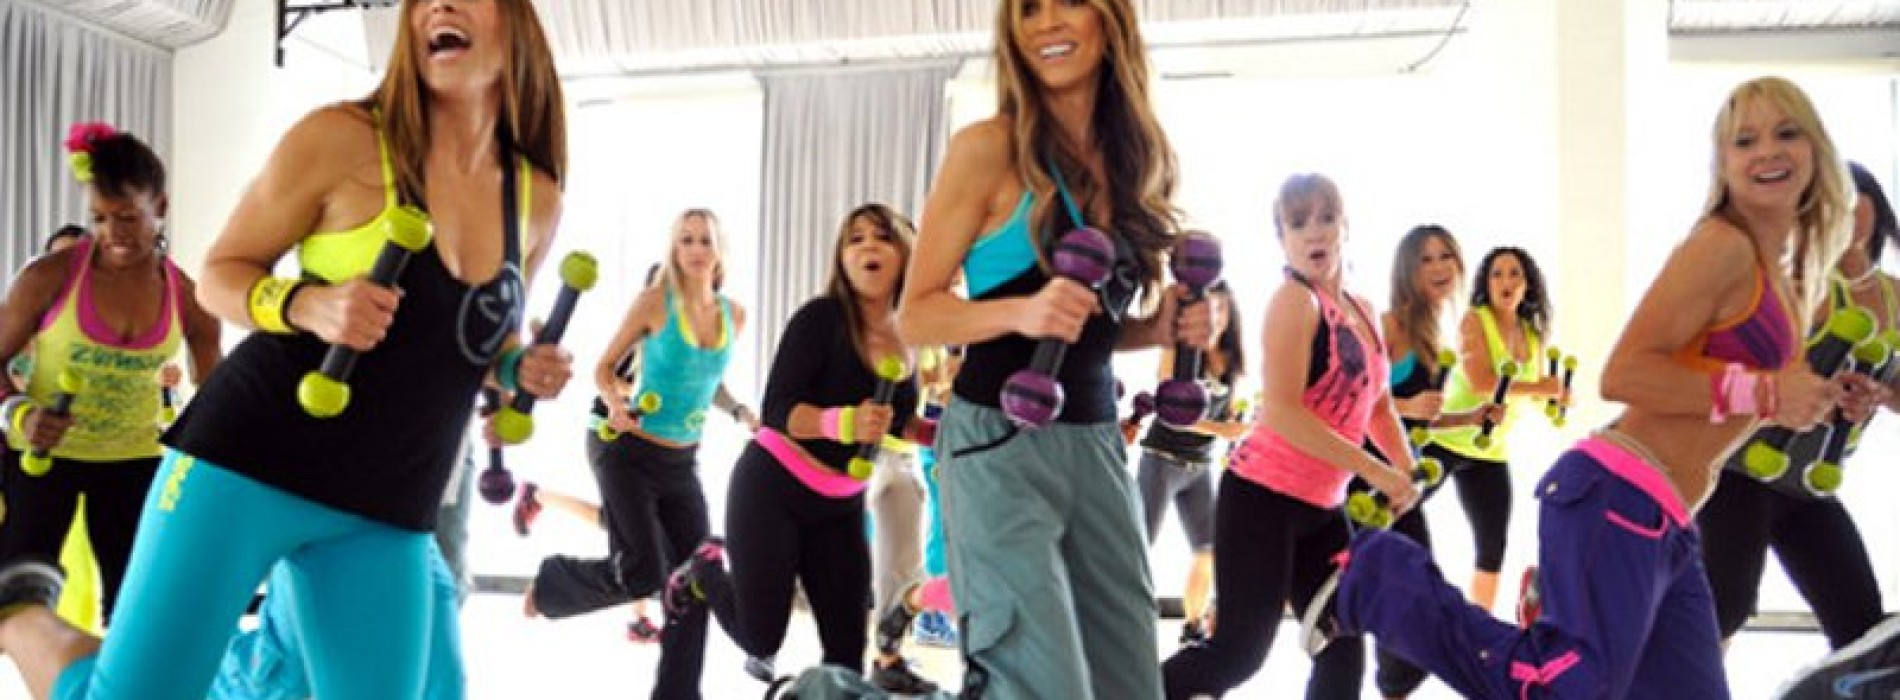 Get fit for 2015: Q&A with disabled Zumba instructor